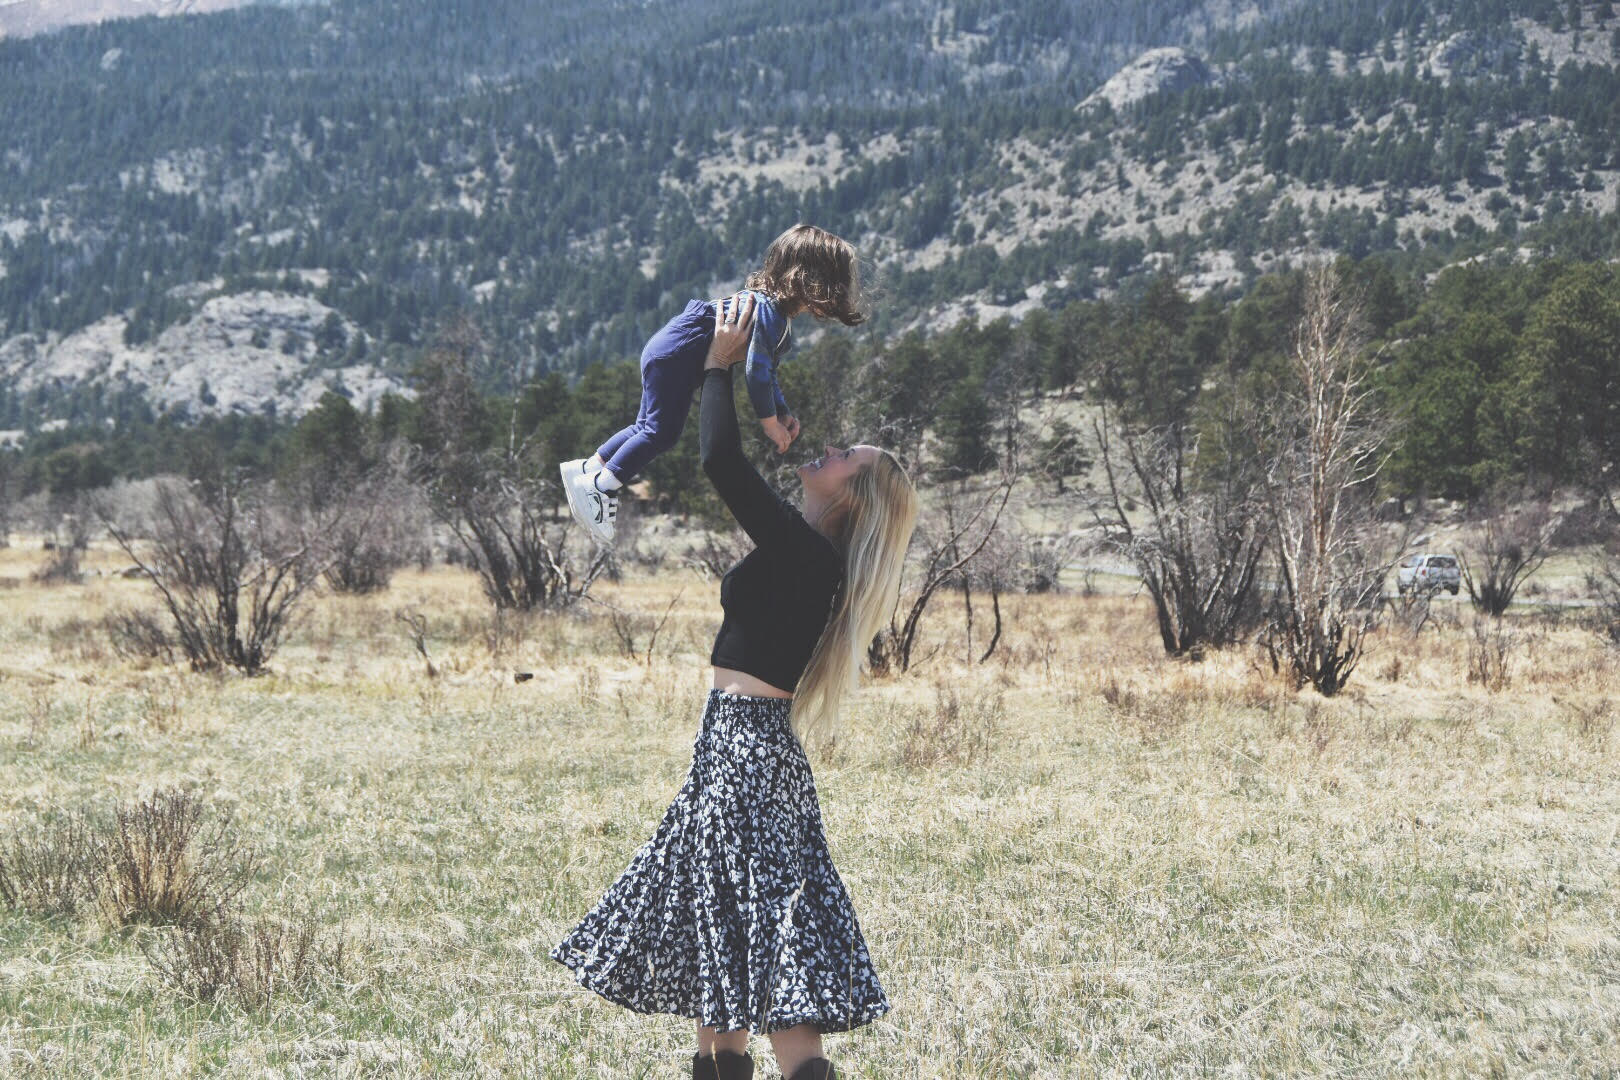 Mama and Child dance in front of mountains